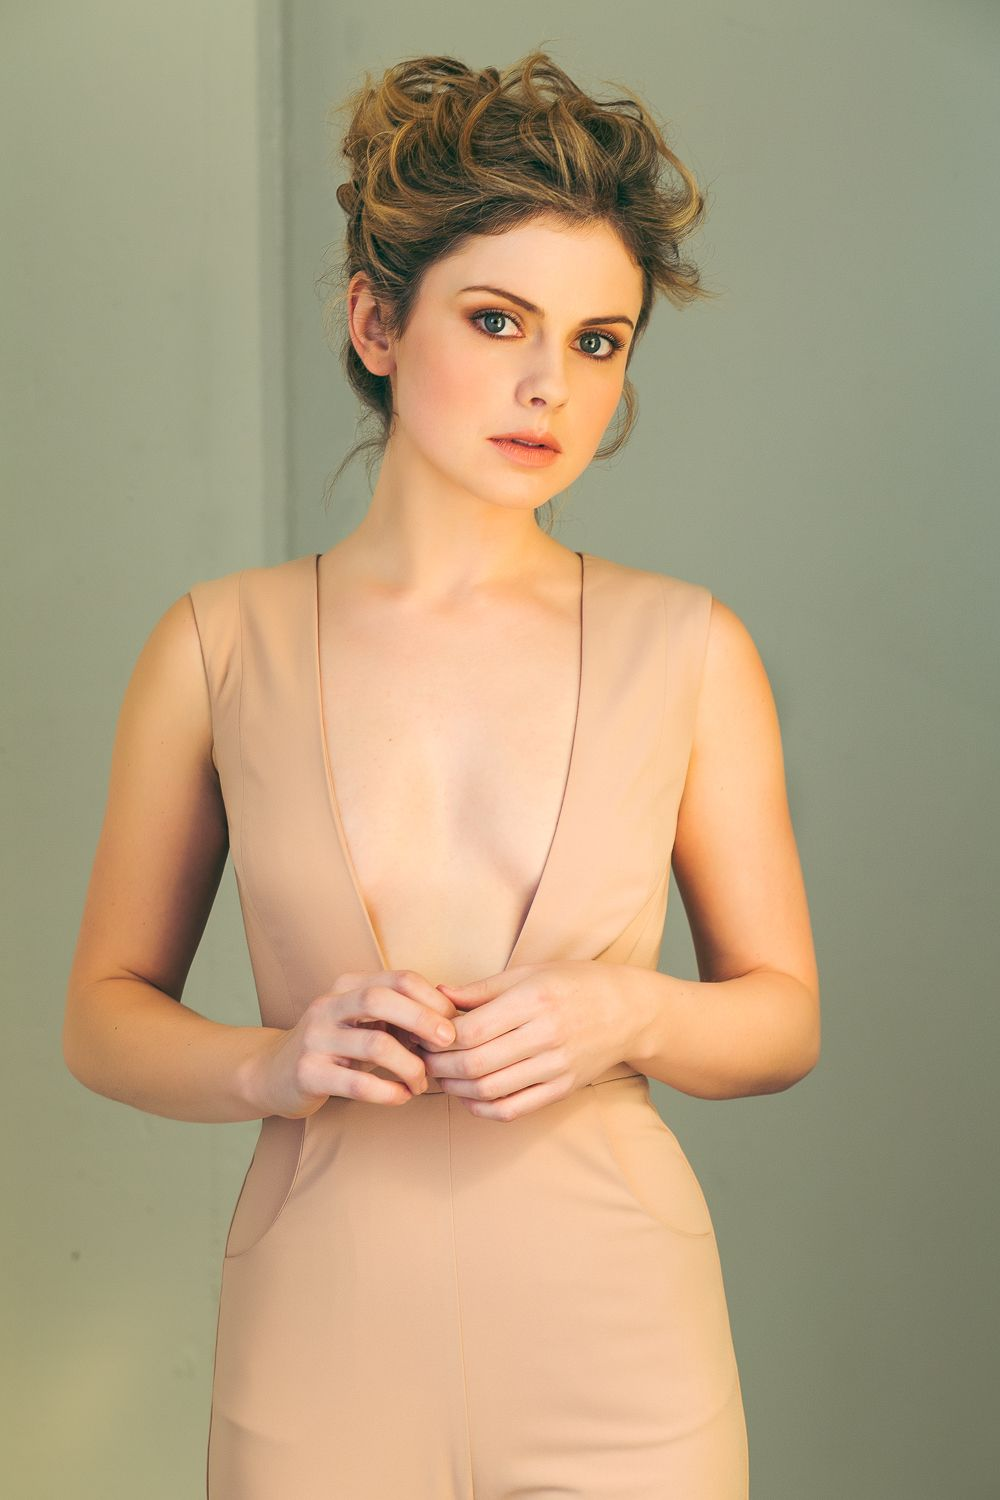 rose mciver birth chart